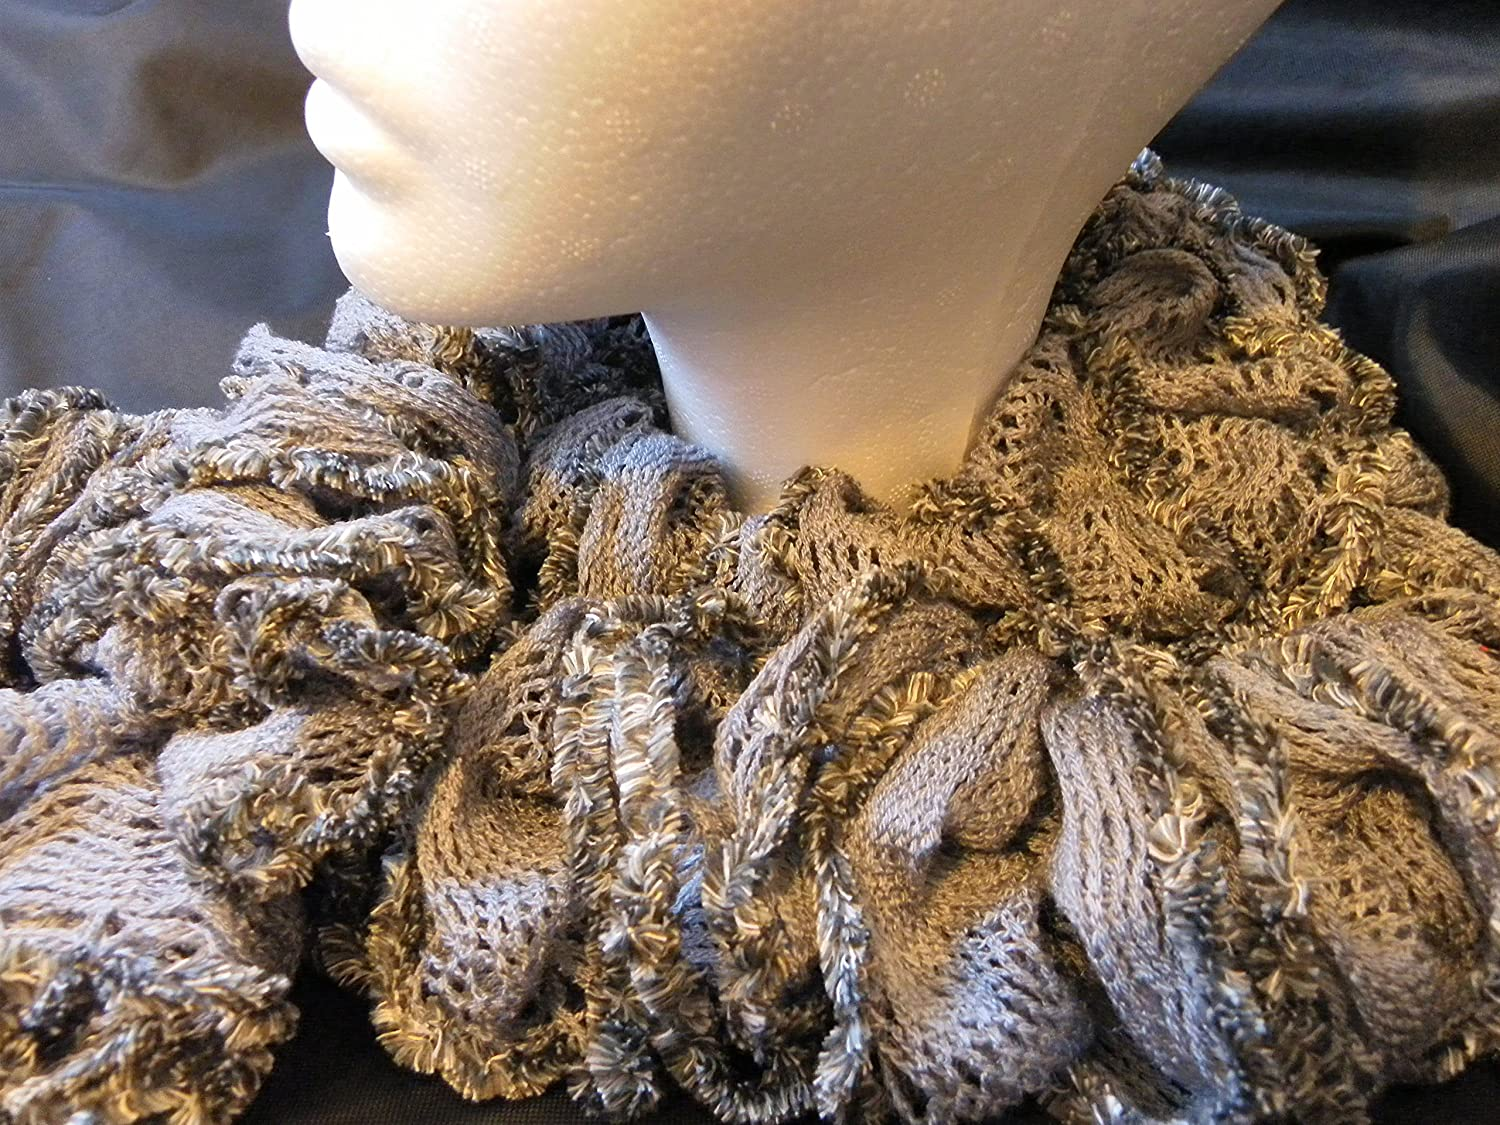 Woman Max 61% OFF scarf winter Sales of SALE items from new works accessory